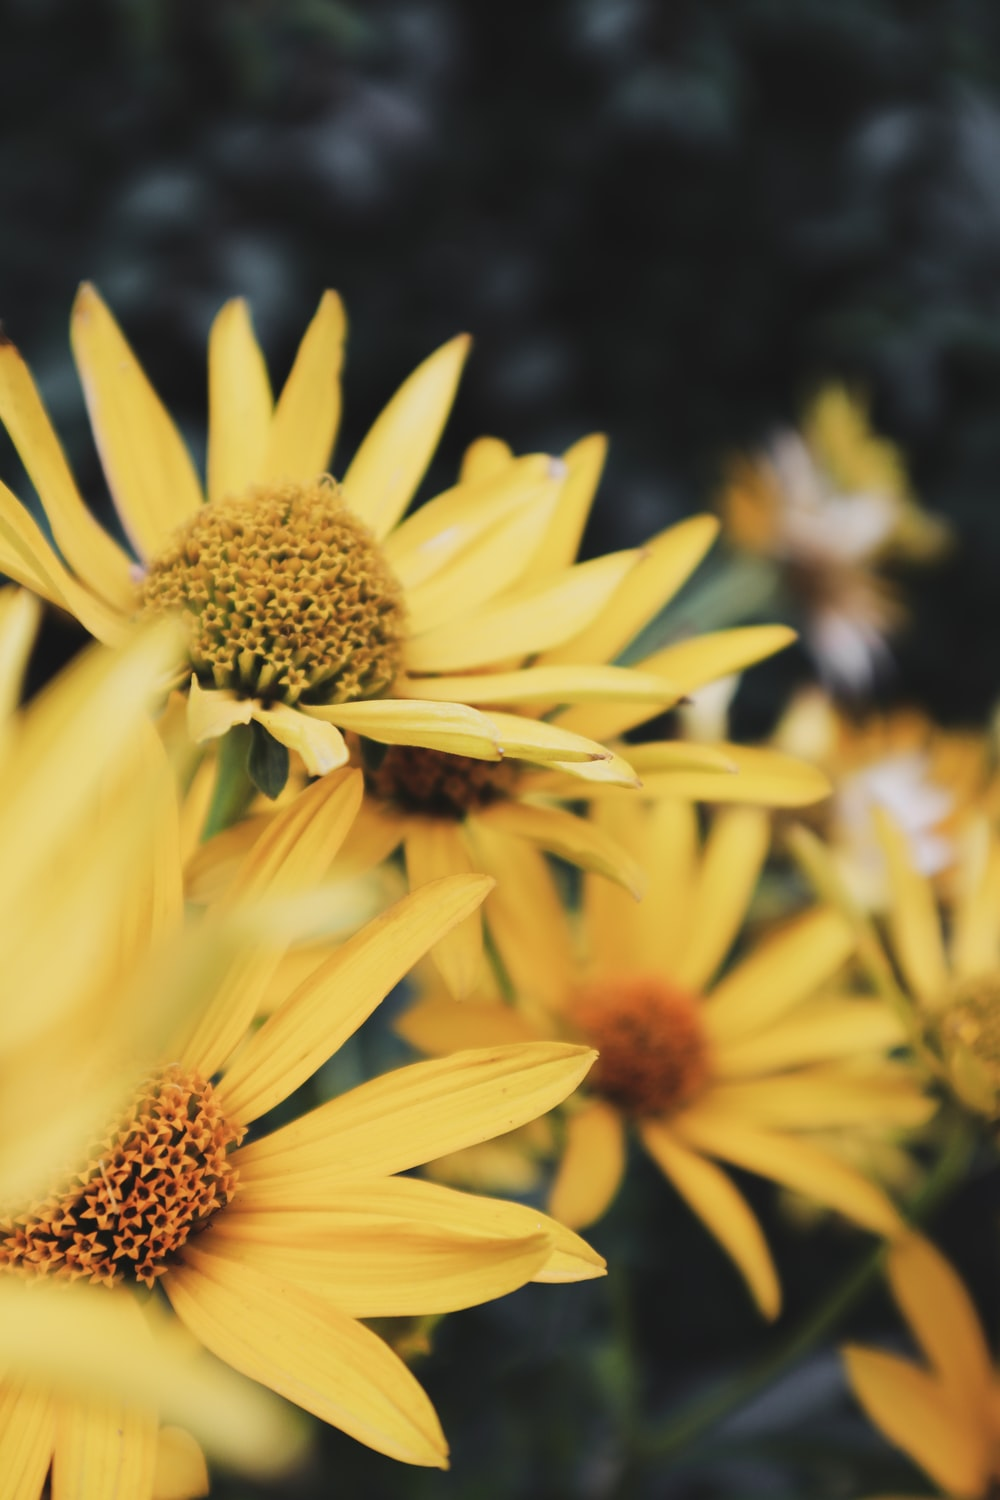 yellow petaled flower lot close-up photography